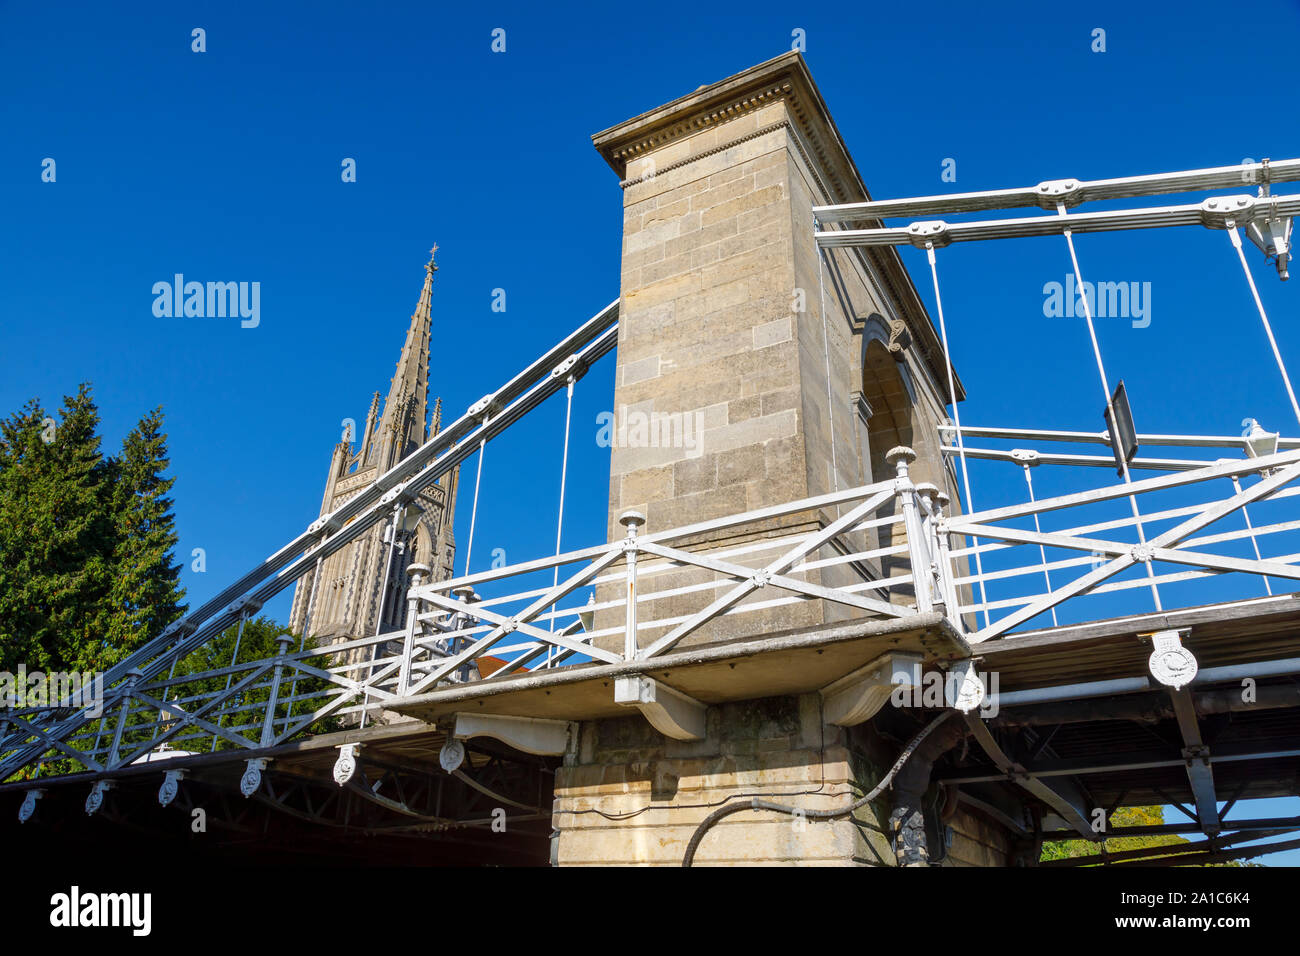 View of the north tower of the Marlow suspension bridge crossing the River Thames in the Wycombe district of Buckinghamshire, southeast England Stock Photo